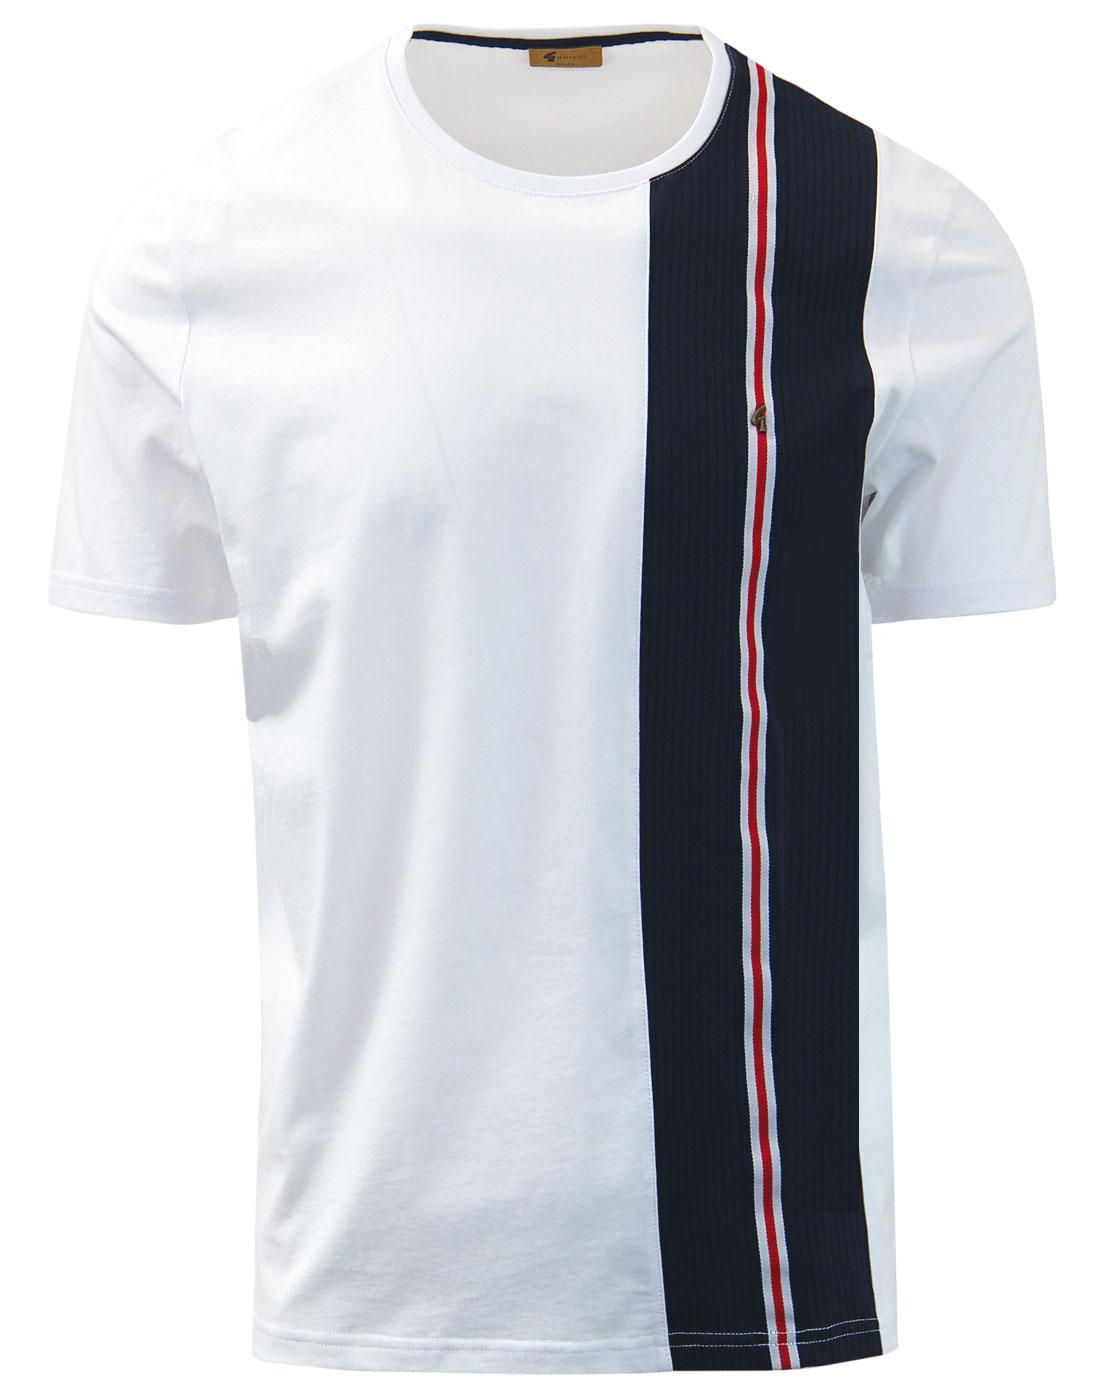 Beta GABICCI VINTAGE Retro Mod Stripe Panel Tee W